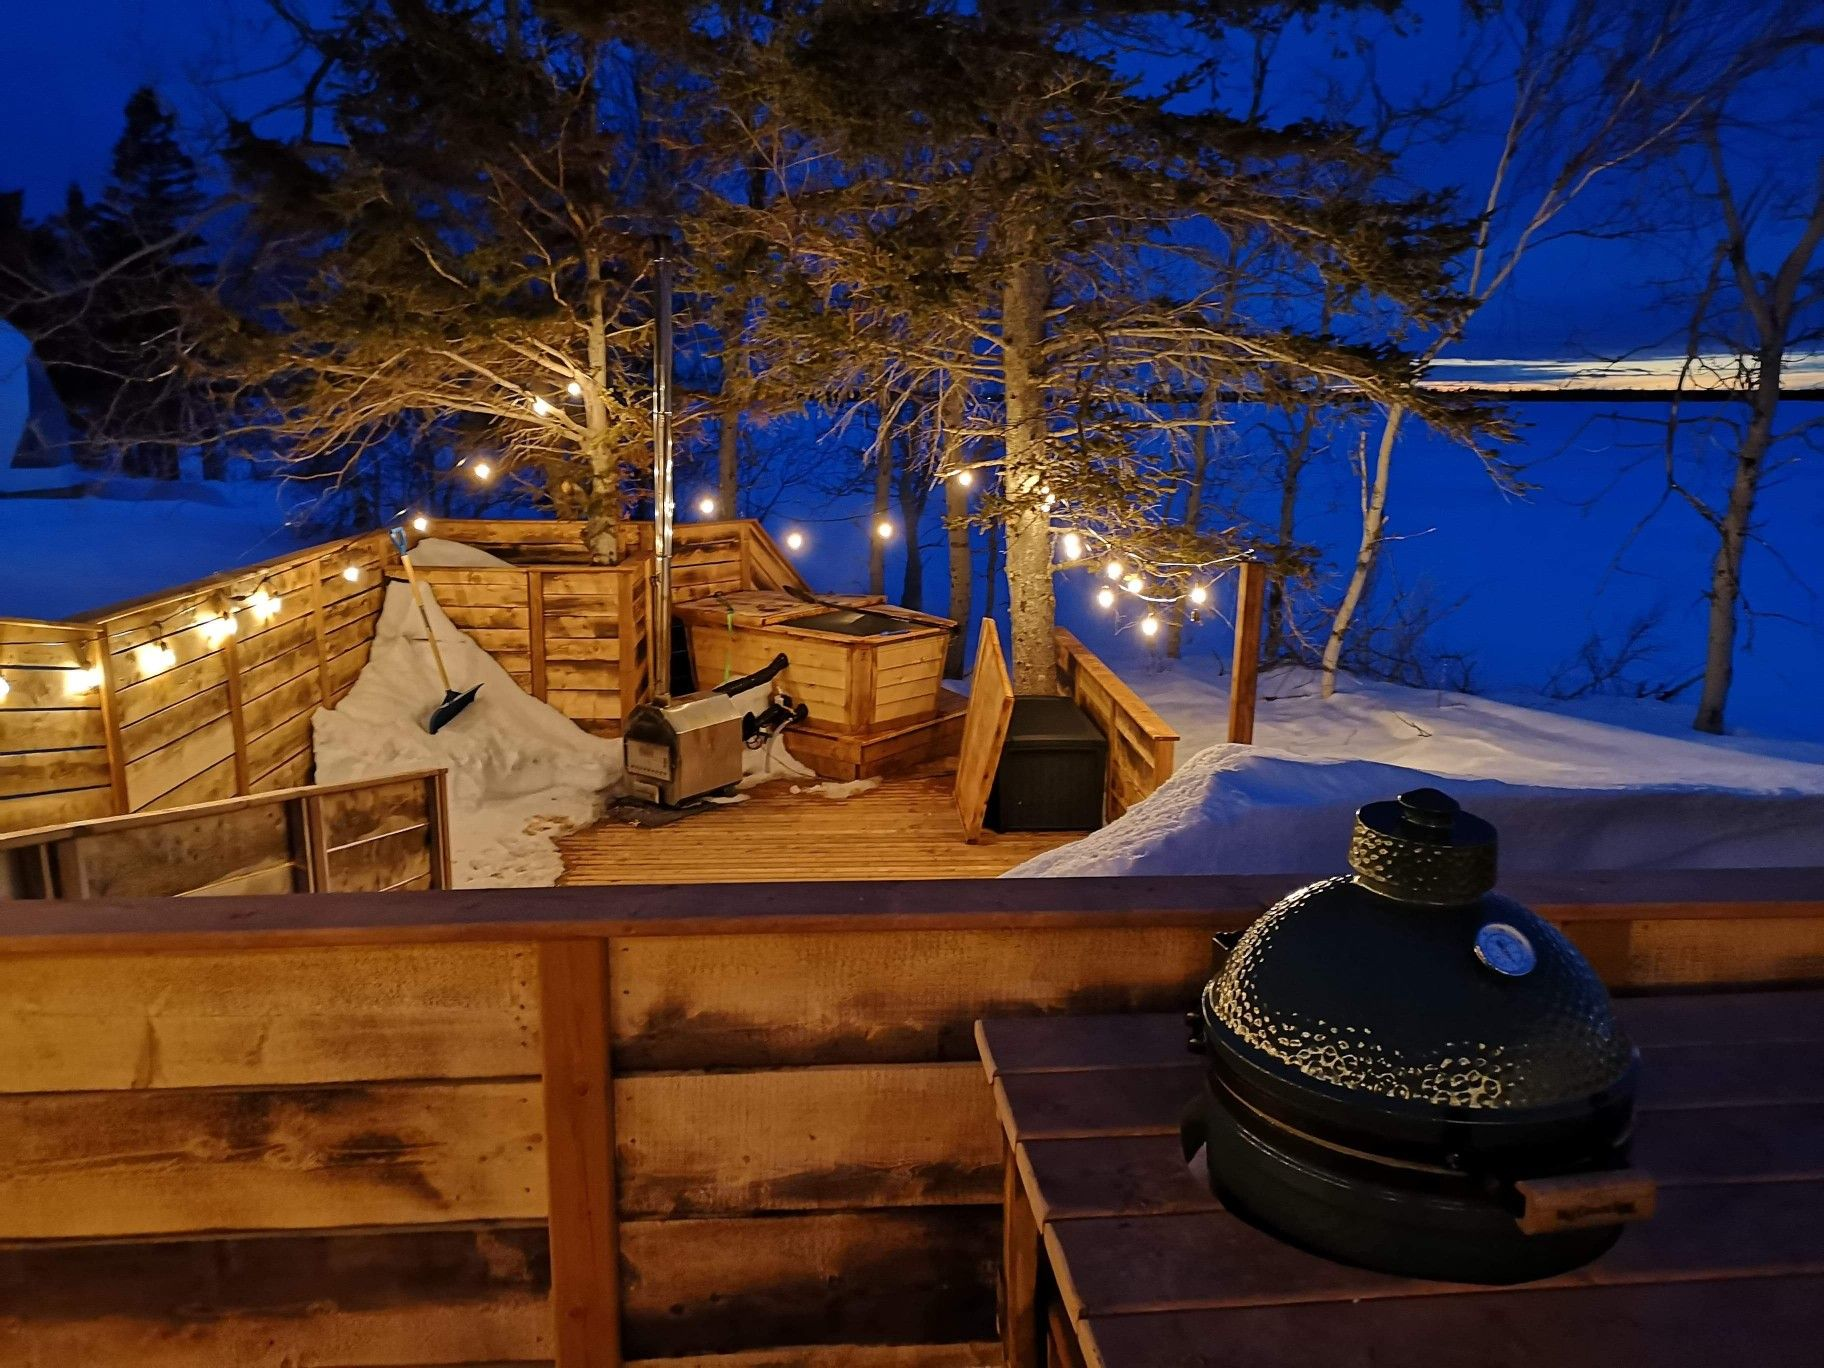 Romantic ambiance for a couple's getaway   Deck lights ...